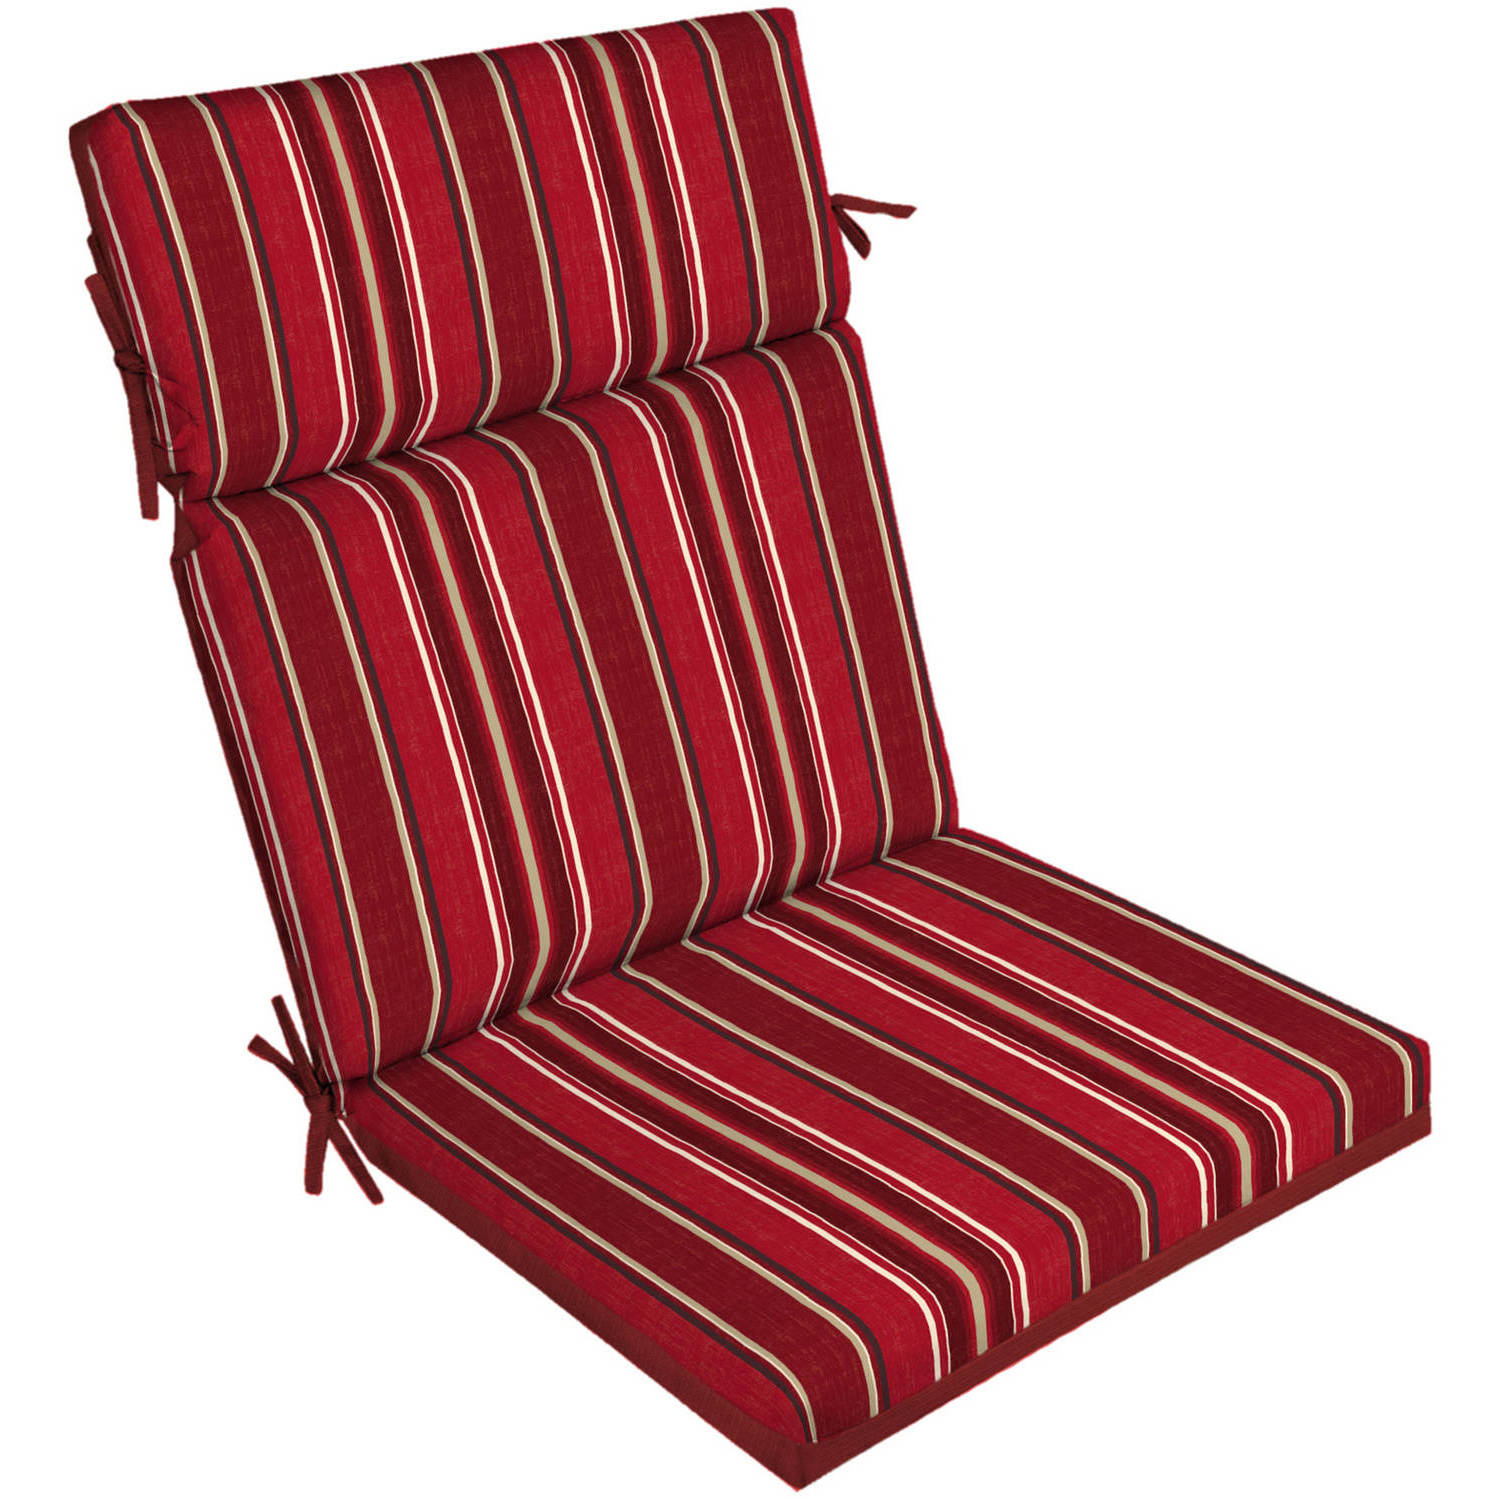 Superb Better Homes And Gardens Outdoor Patio Reversible Dining Chair Cushion,  Multiple Patterns   Walmart.com